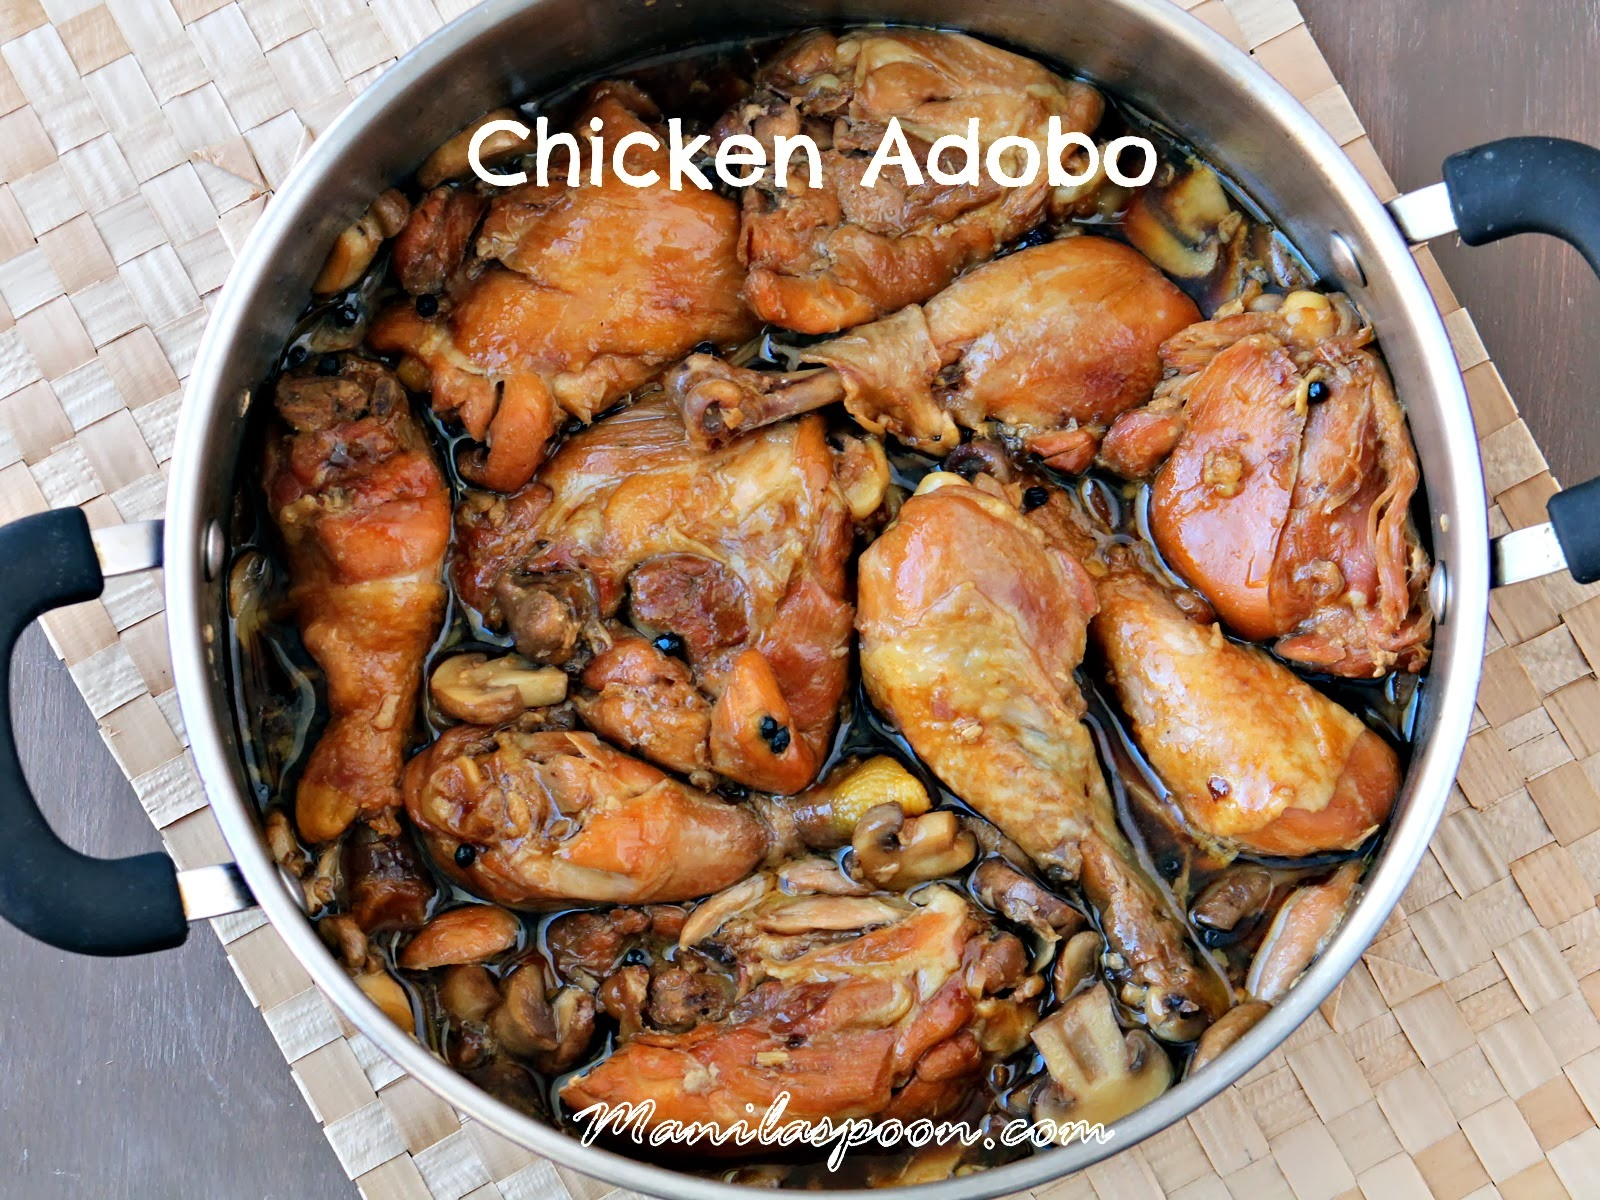 This sweet-salty, vinegar-free Chicken Adobo version is so yummy! You'll be mopping up all that sauce on your plate. #chicken #adobo #filipinofood